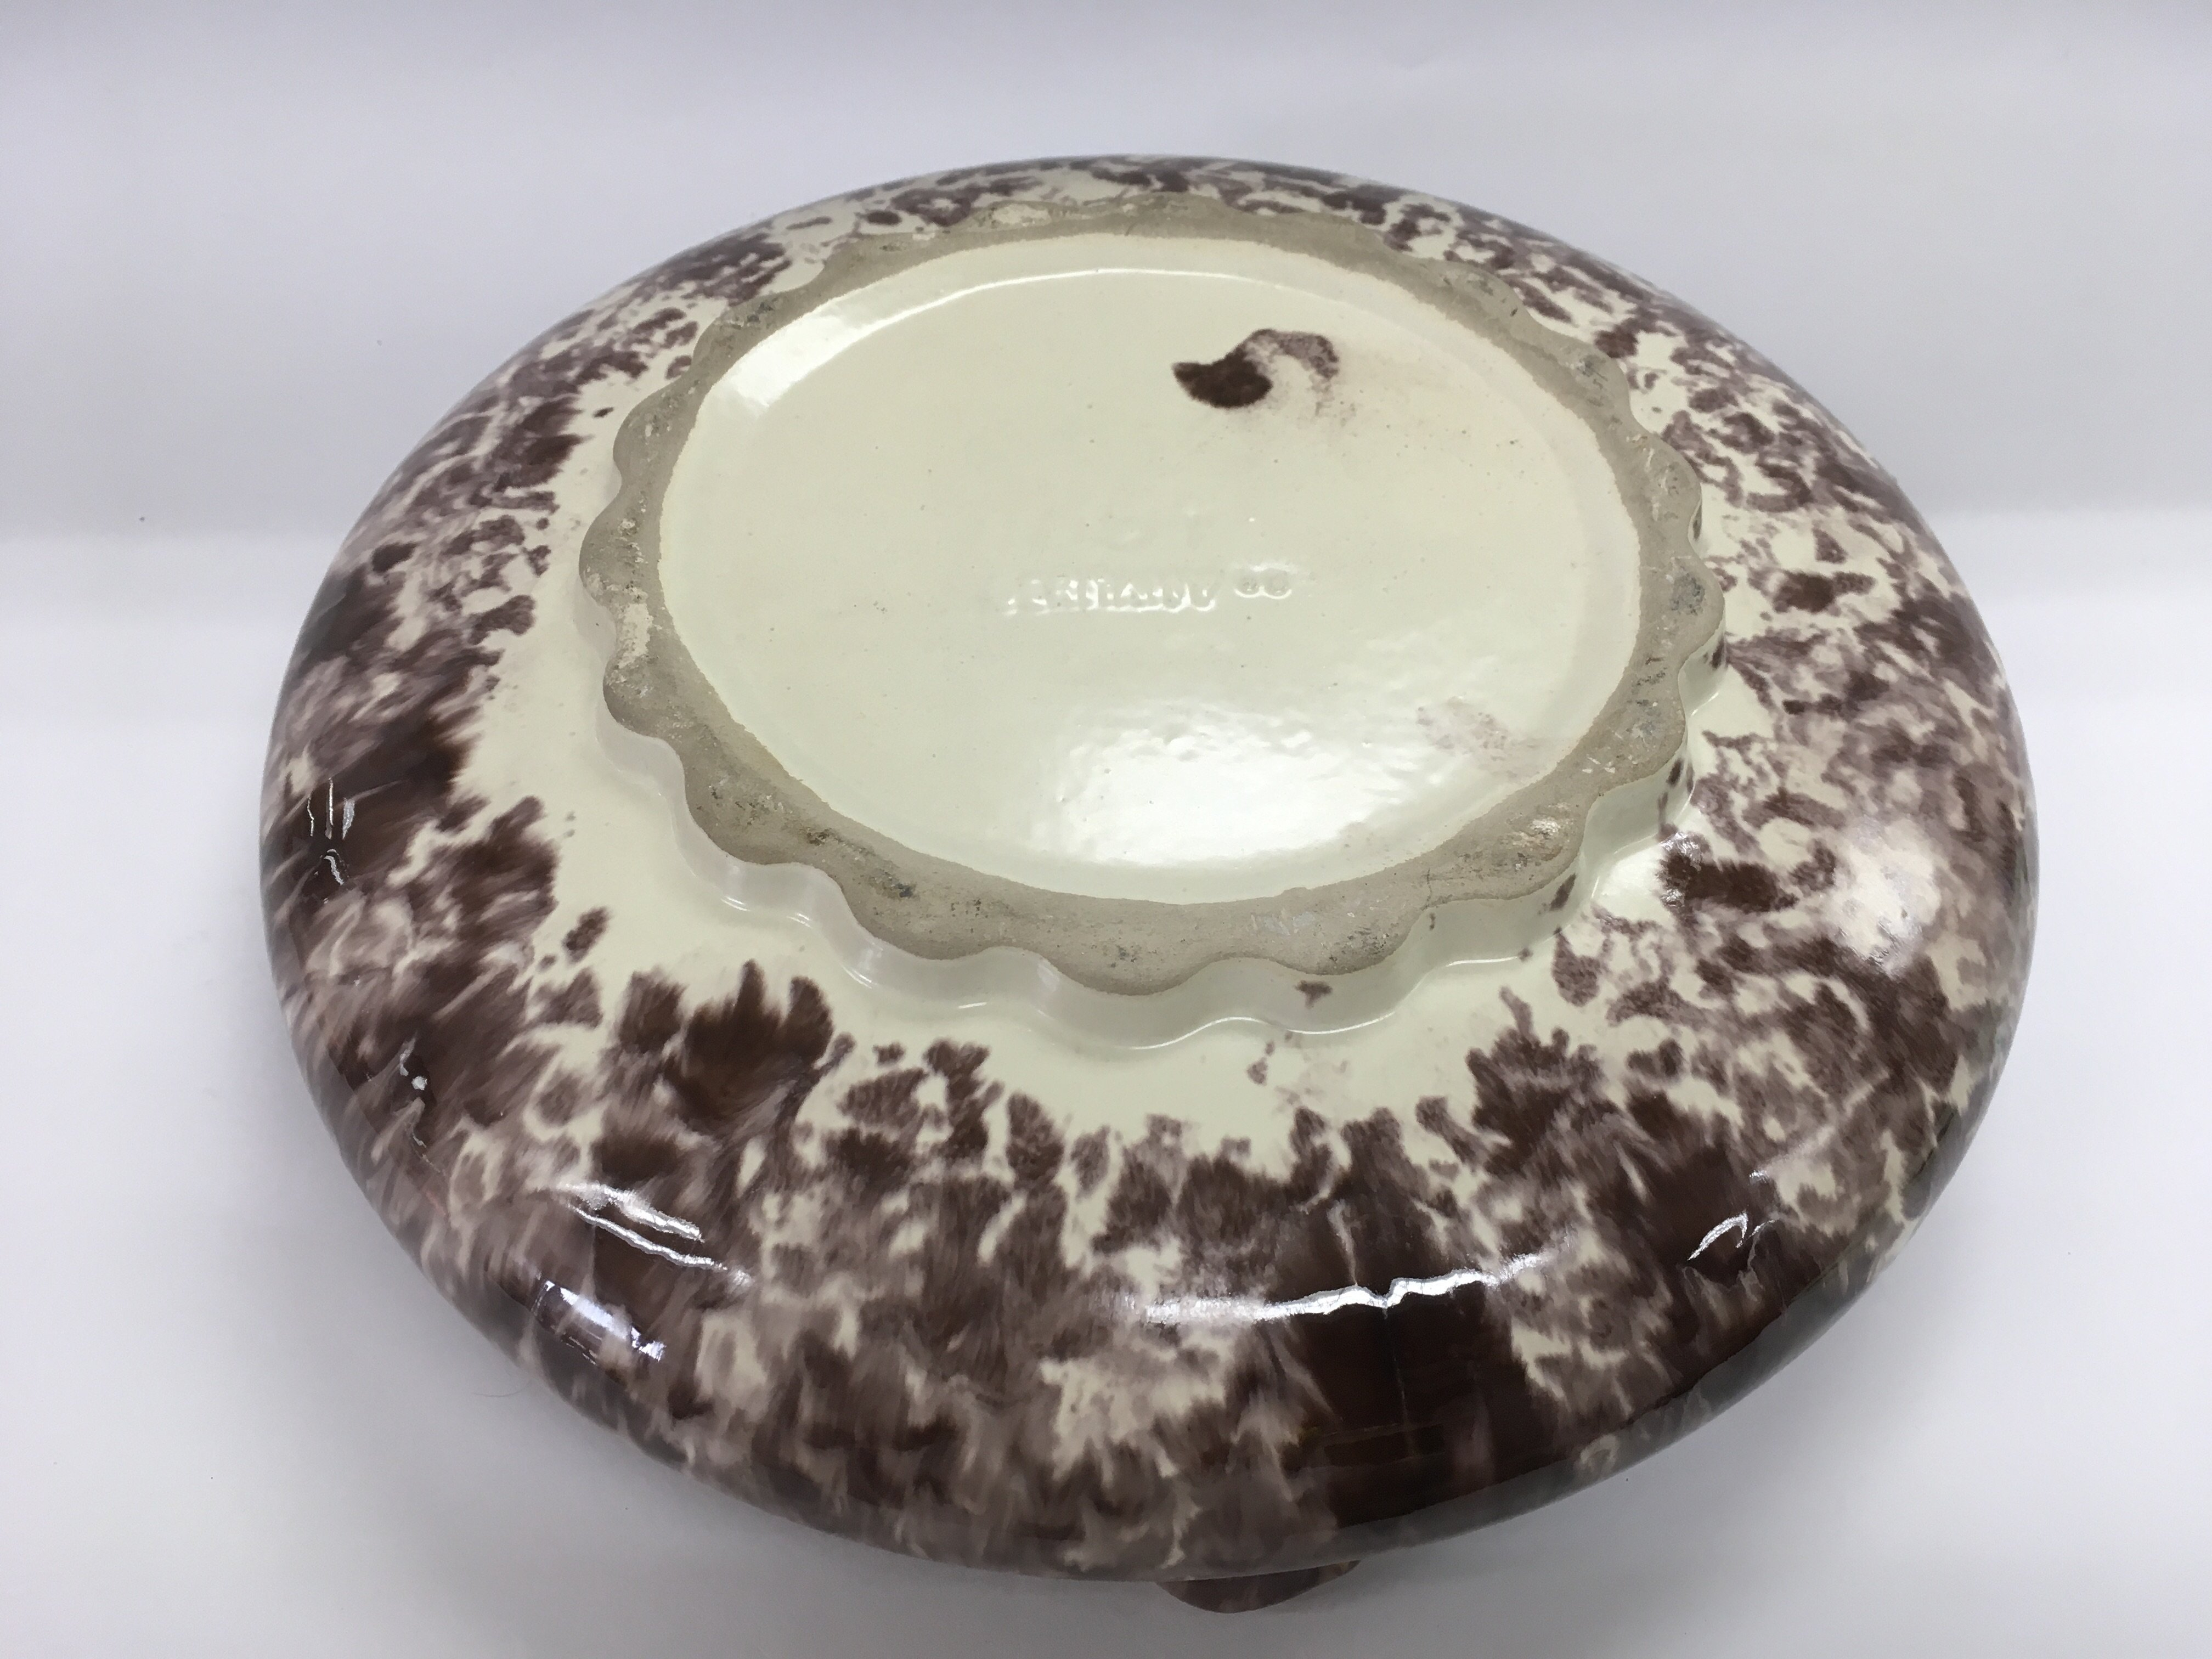 Lot 708 - A German art pottery charger, approx diameter 35cm